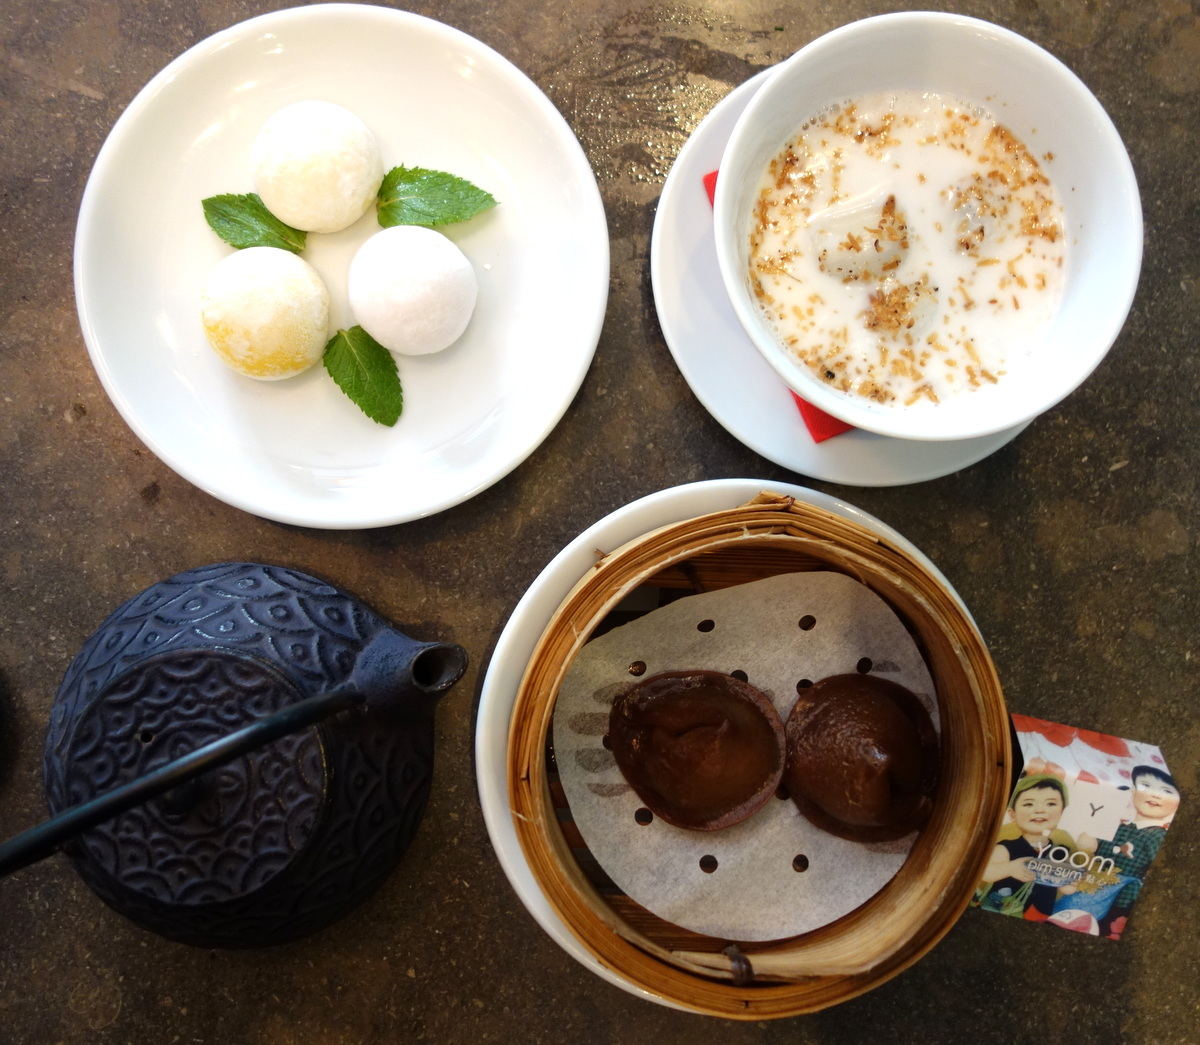 Yoom dim sum Paris - Rue des Martyrs - Blog food Paris